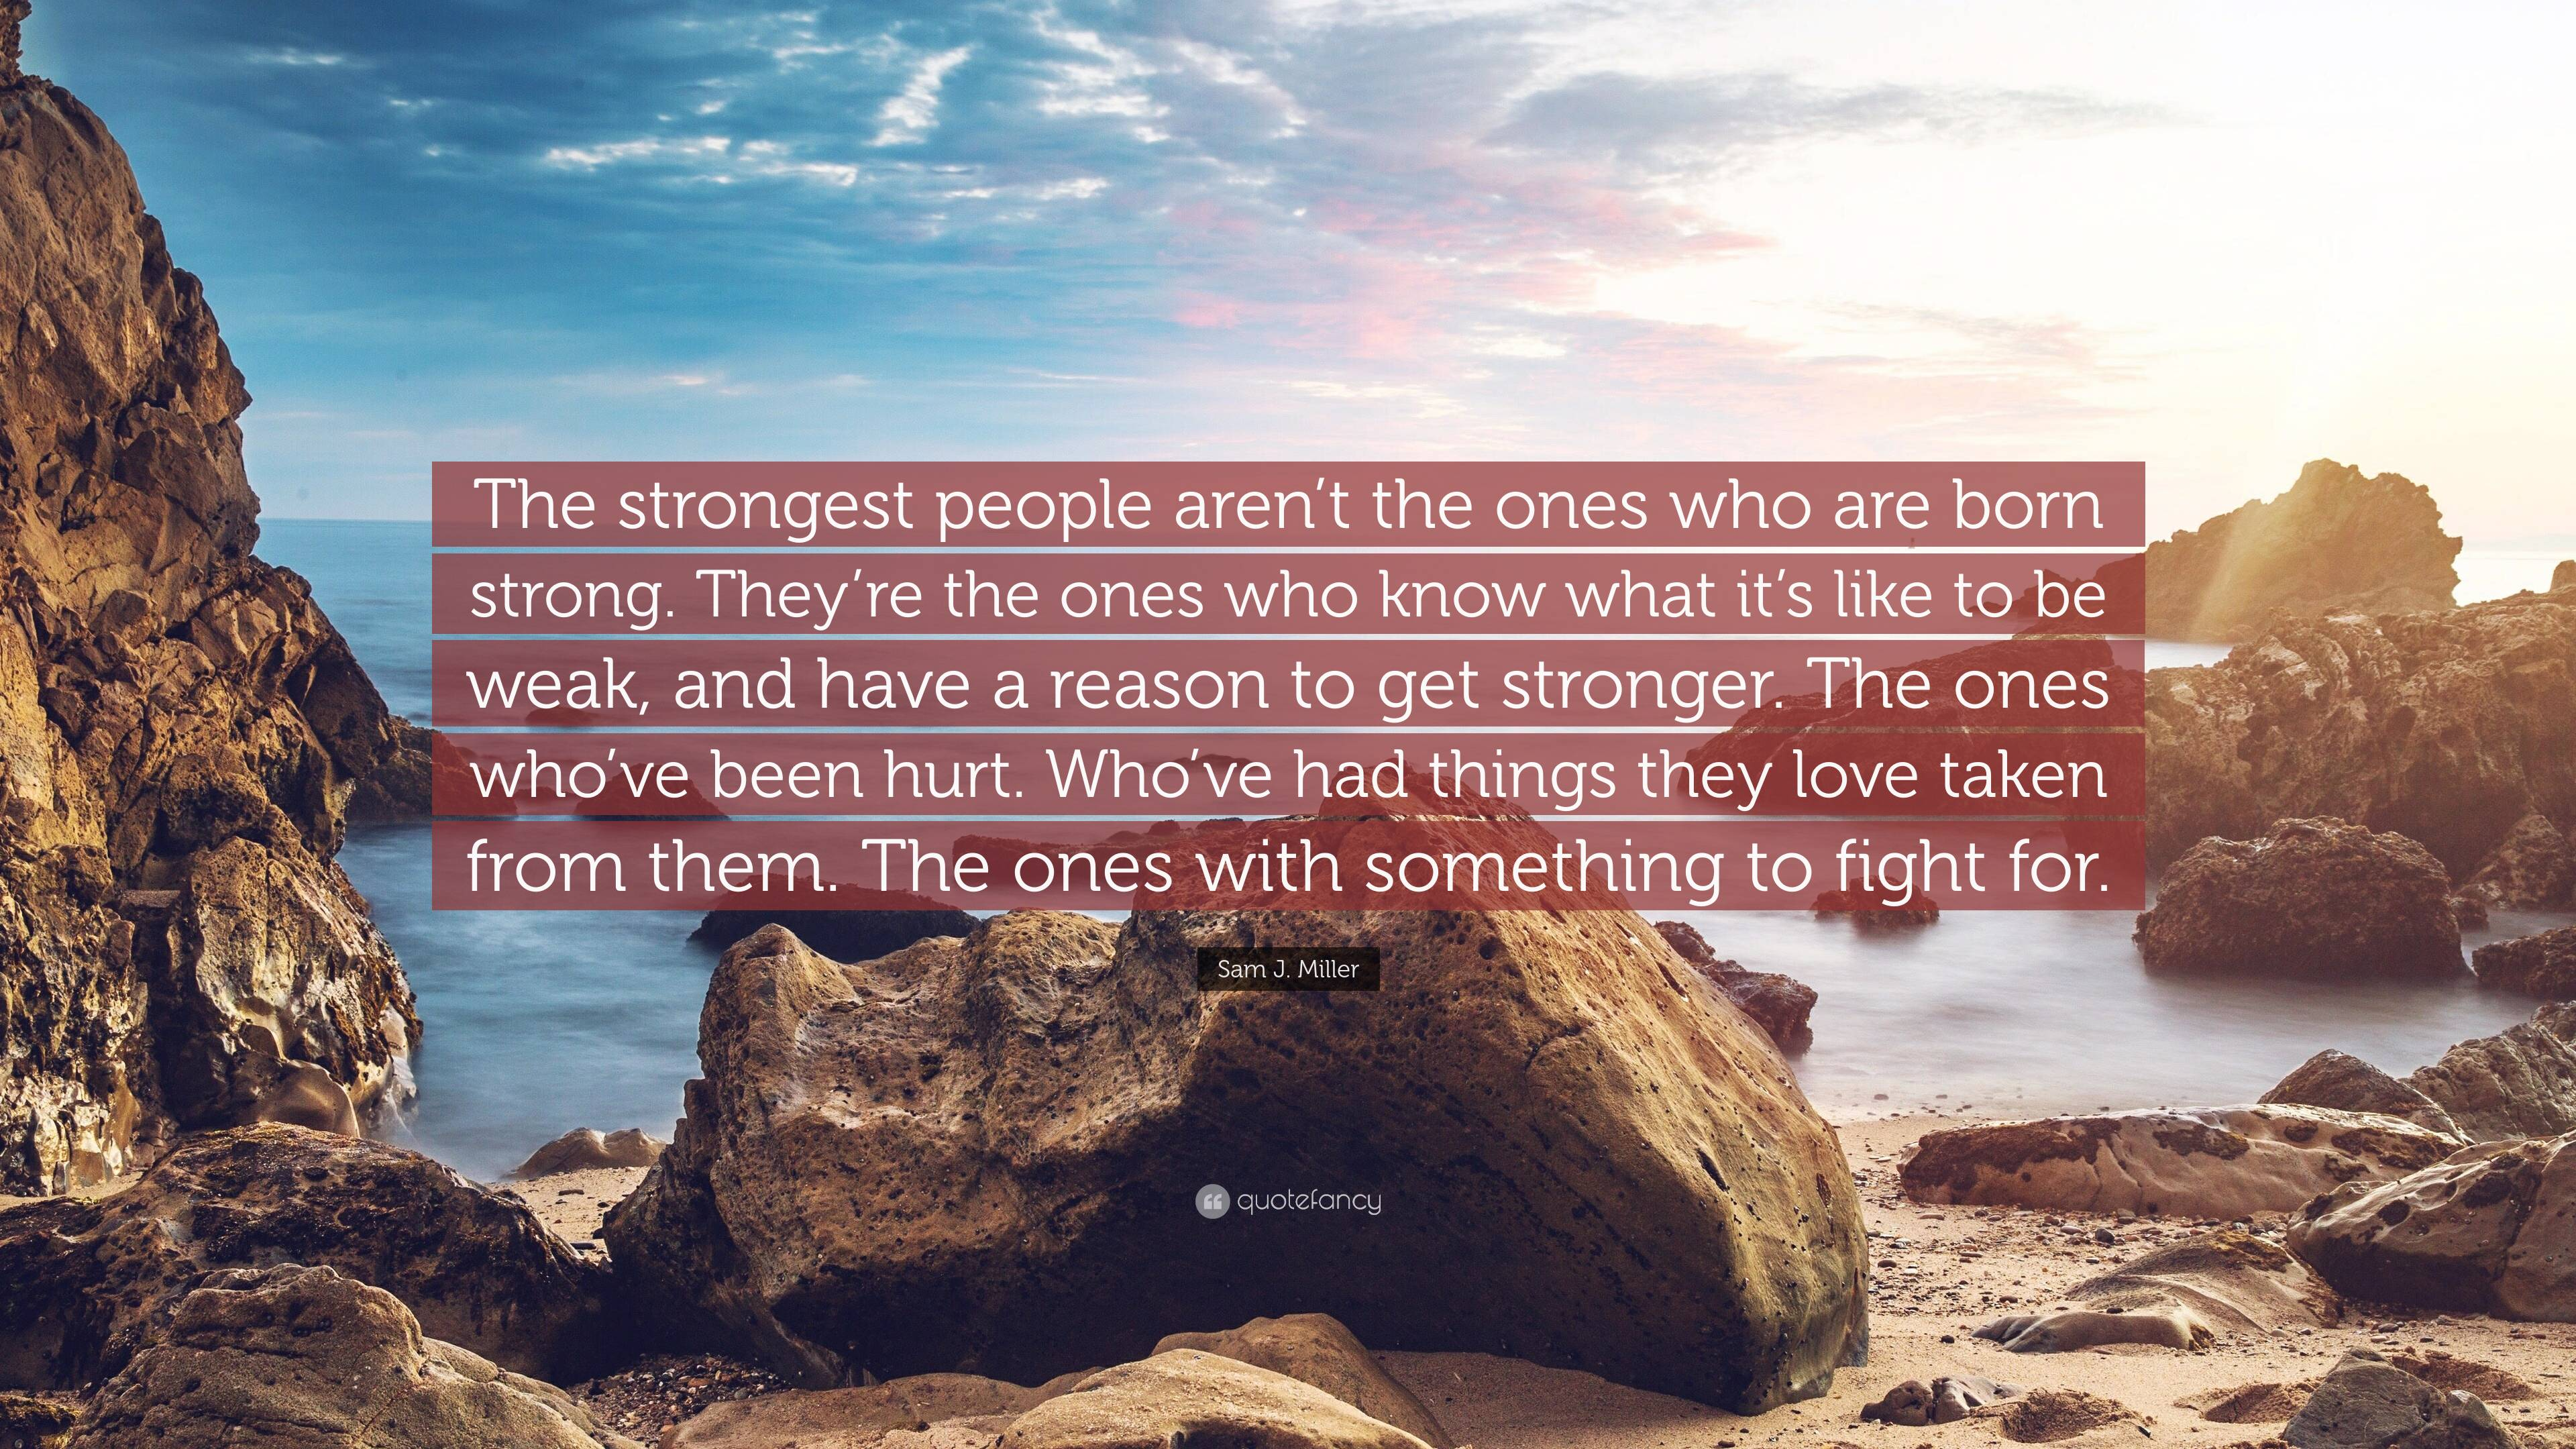 """Sam J. Miller Quote """"The strongest people aren't the ones who are ..."""